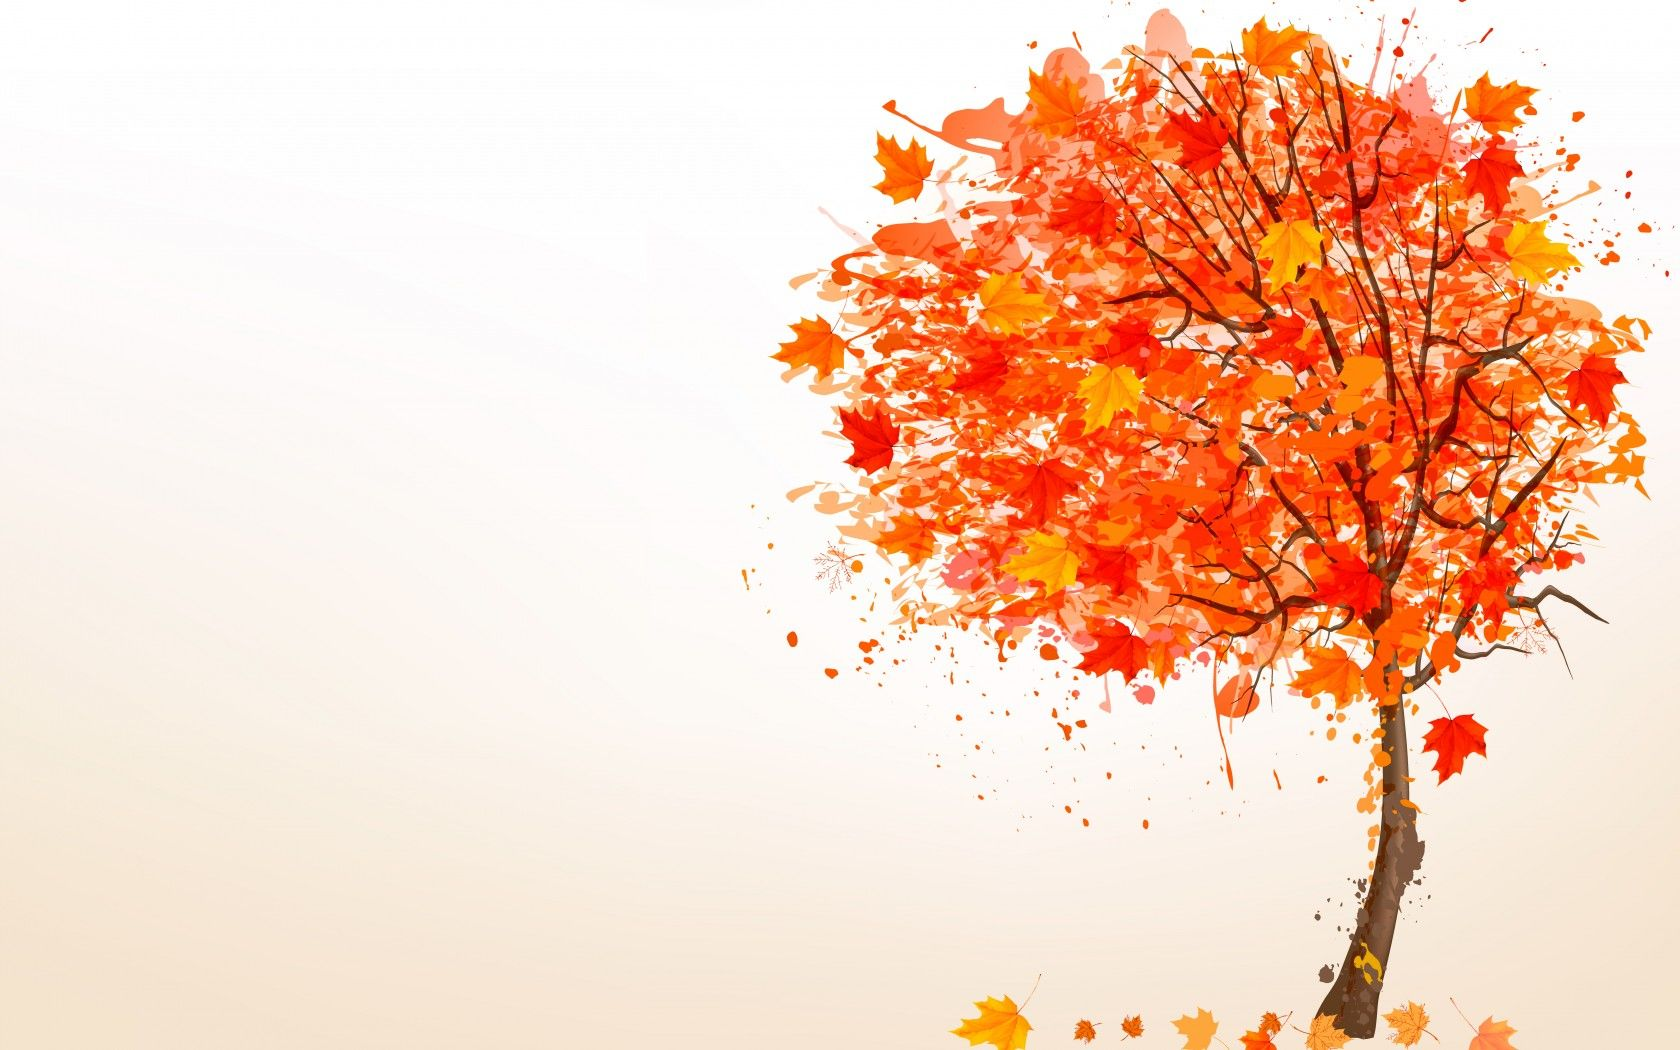 Leaves on pinterest autumn leaves fall leaves crafts and fall - Yellow Maple Leaves Falling From Tree In Autumn Hd Wallpaper By Lovewall